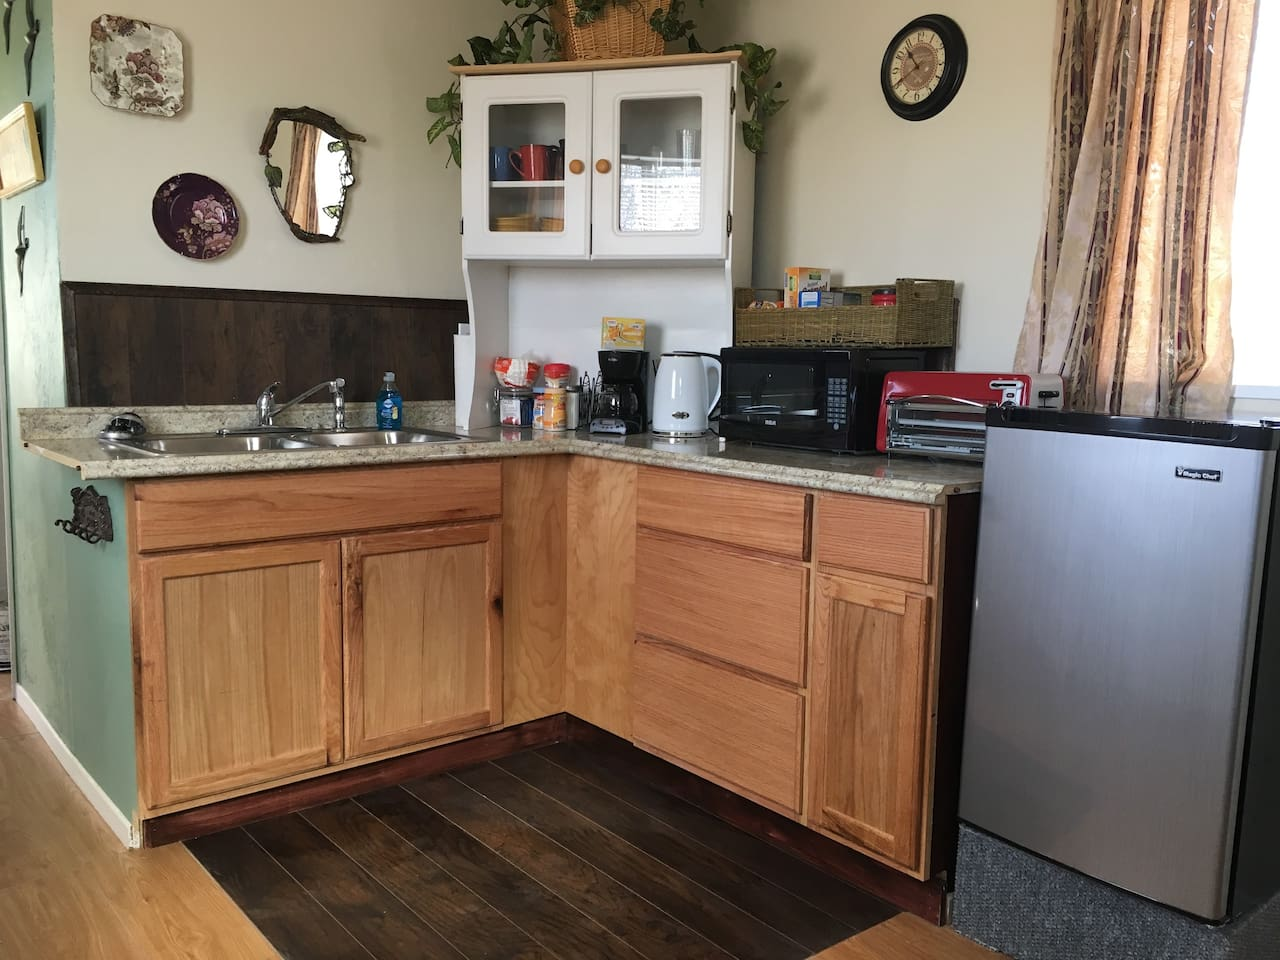 This a courtesy kitchen only with microwave, coffee pot, electric tea kettle, mini refrigerator, dishes and utensils and toaster oven.